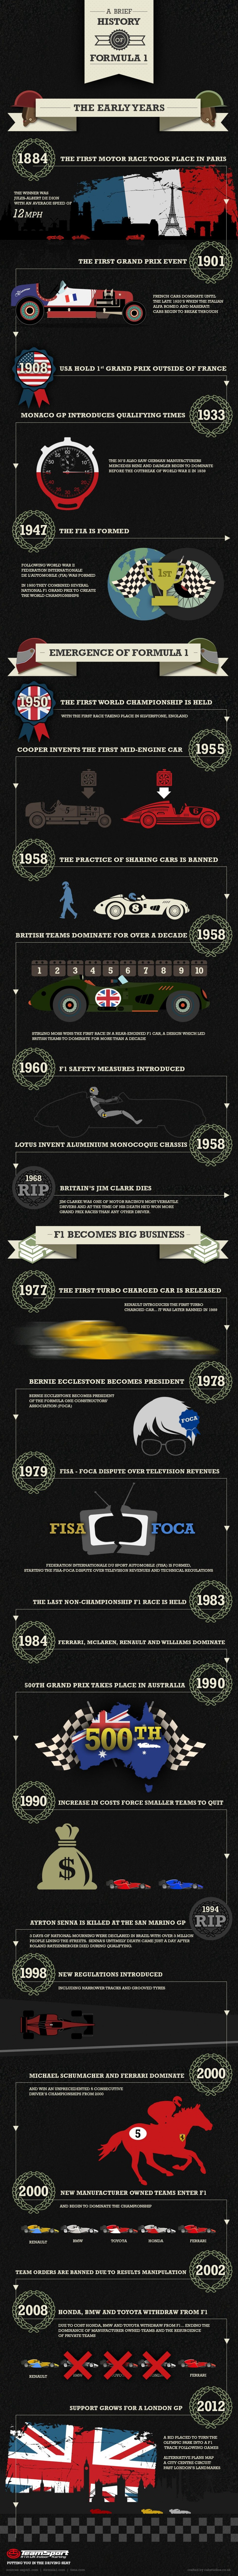 Infographic: A Brief History of Formula 1